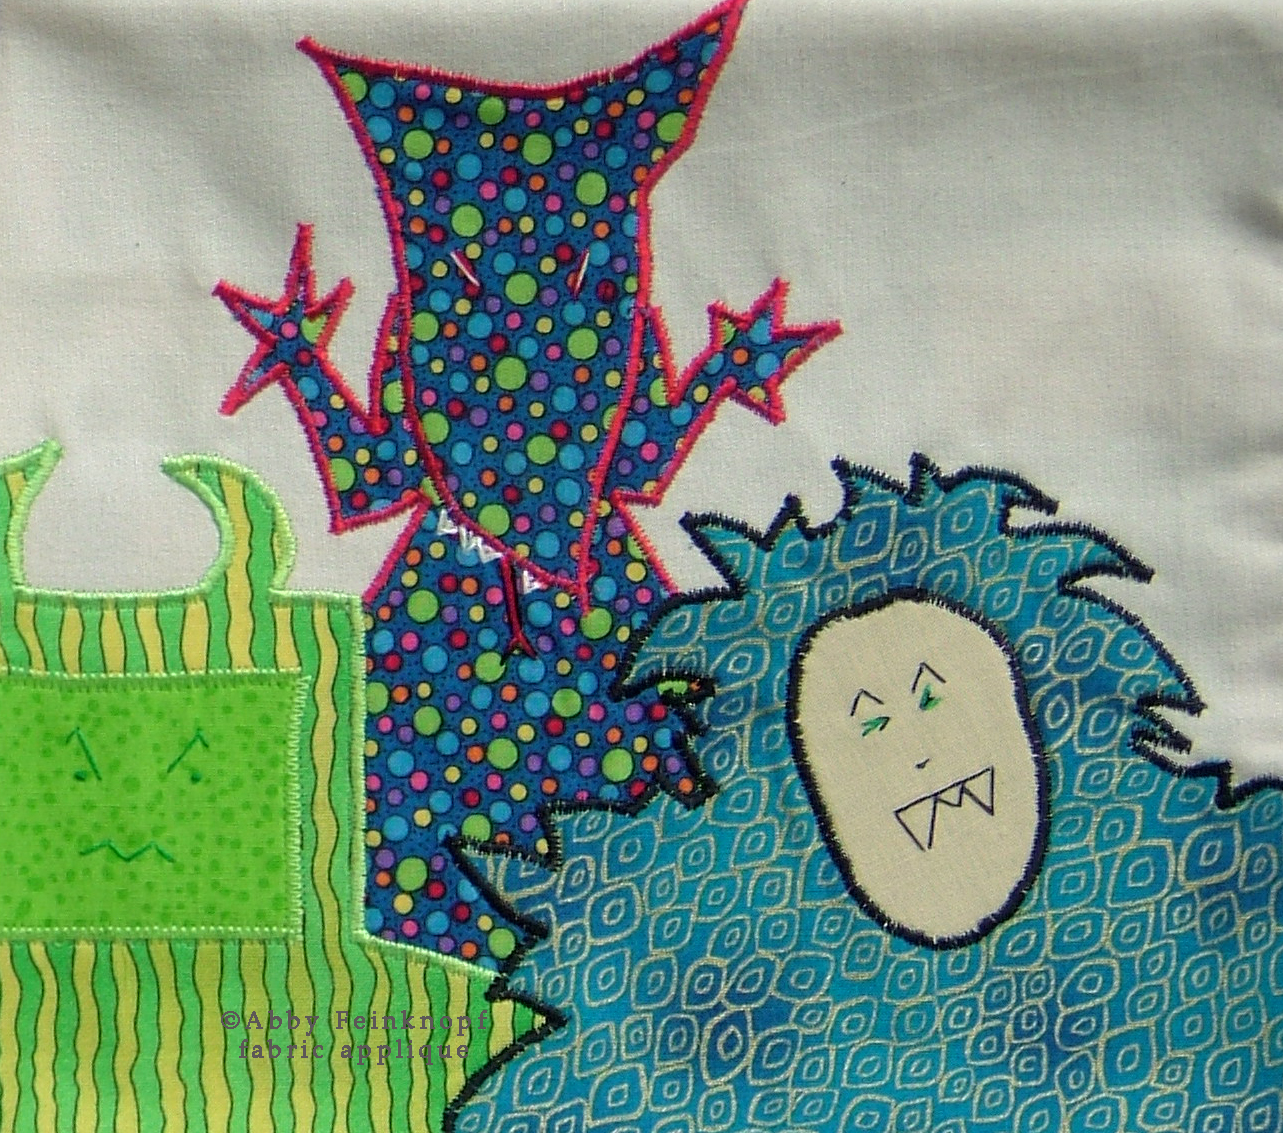 Fabric Illustration ©Abby Feinknopf, from A Monster's Cookbook...